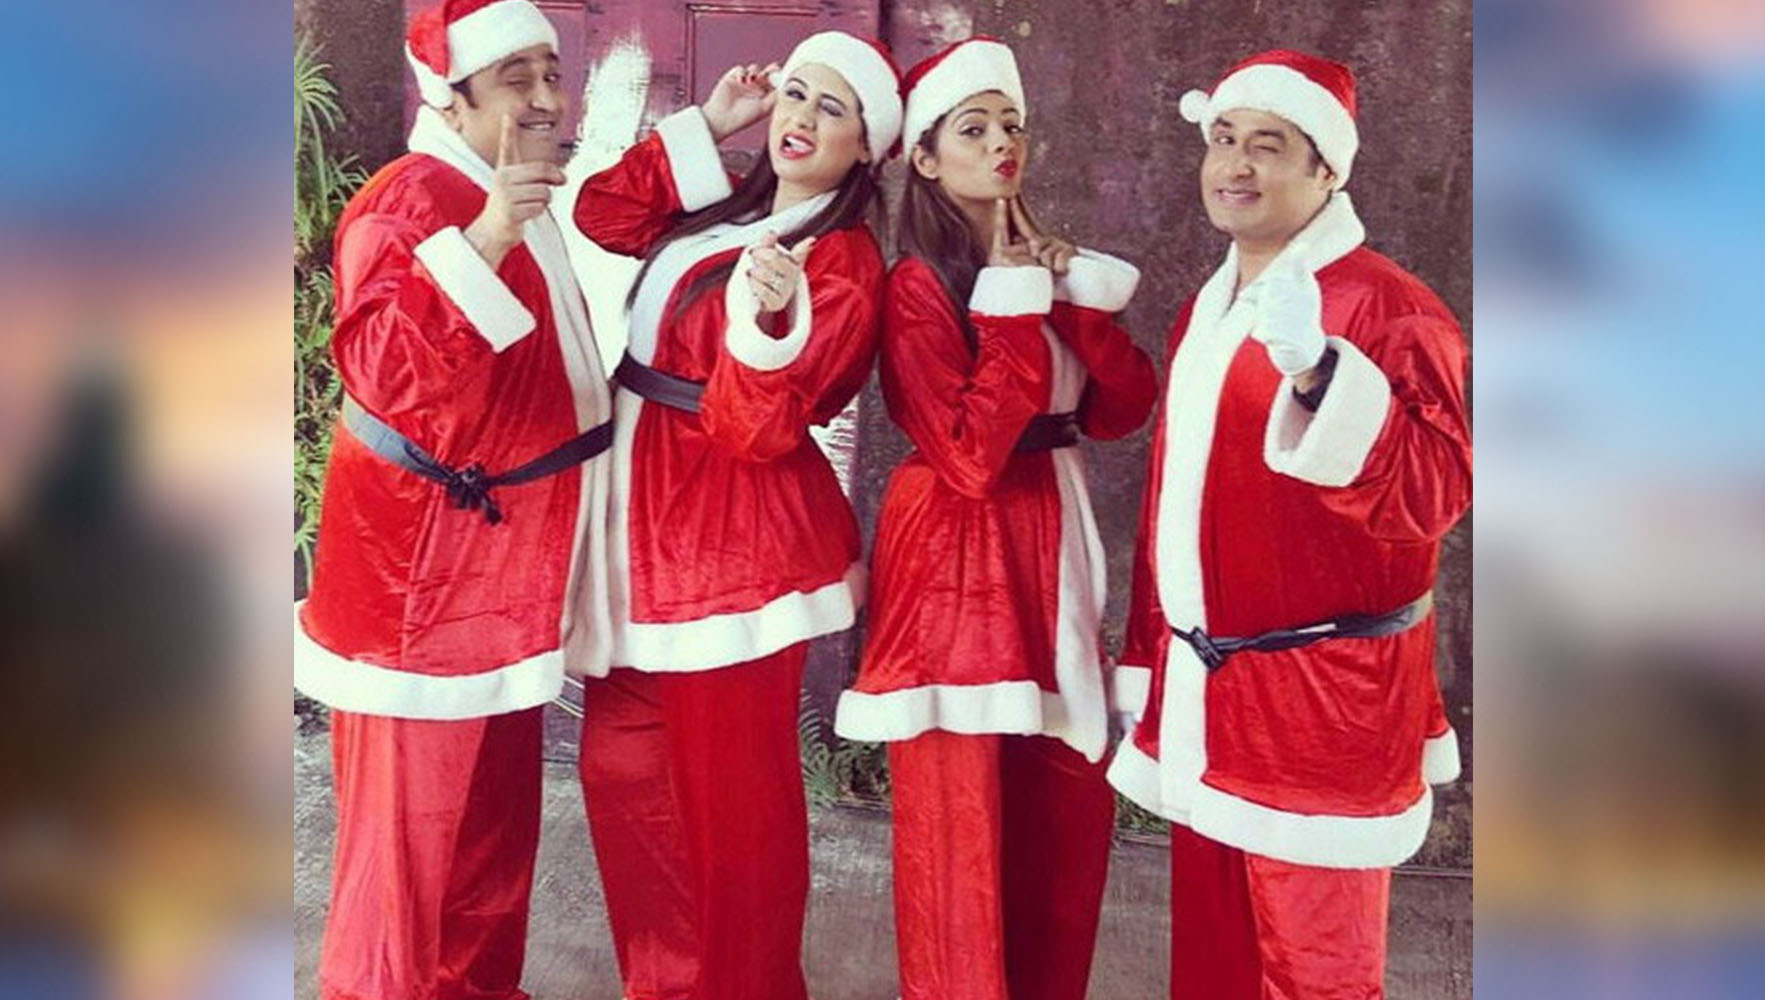 Tv shows celebrities celebrating christmas